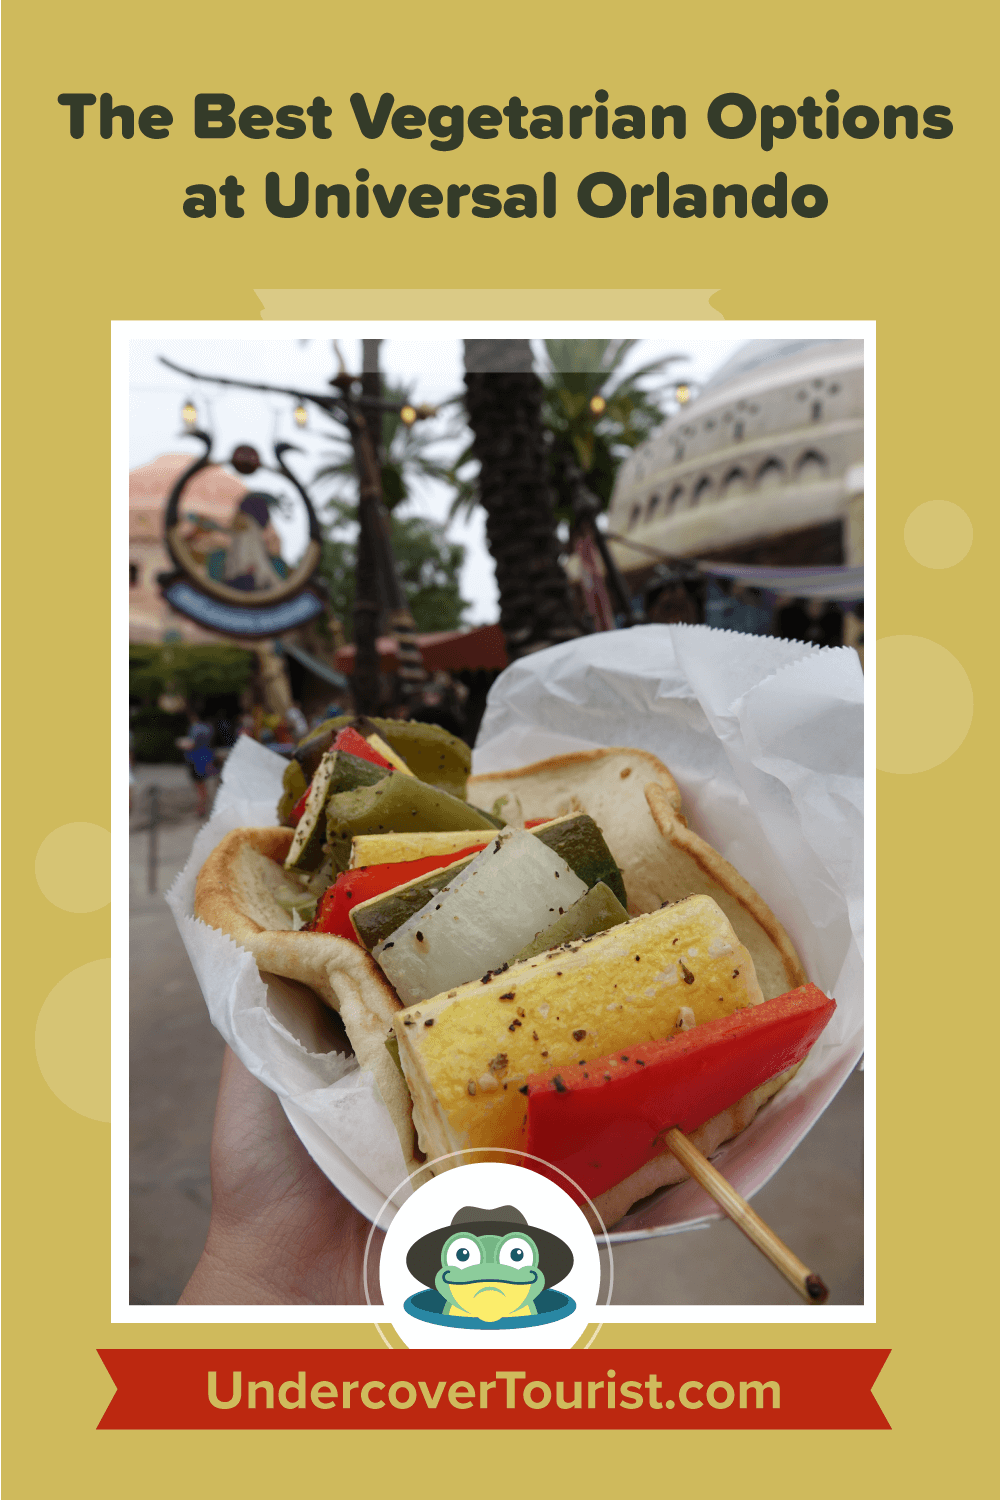 Best Options for a Vegetarian at Universal Orlando - Pinterest Image